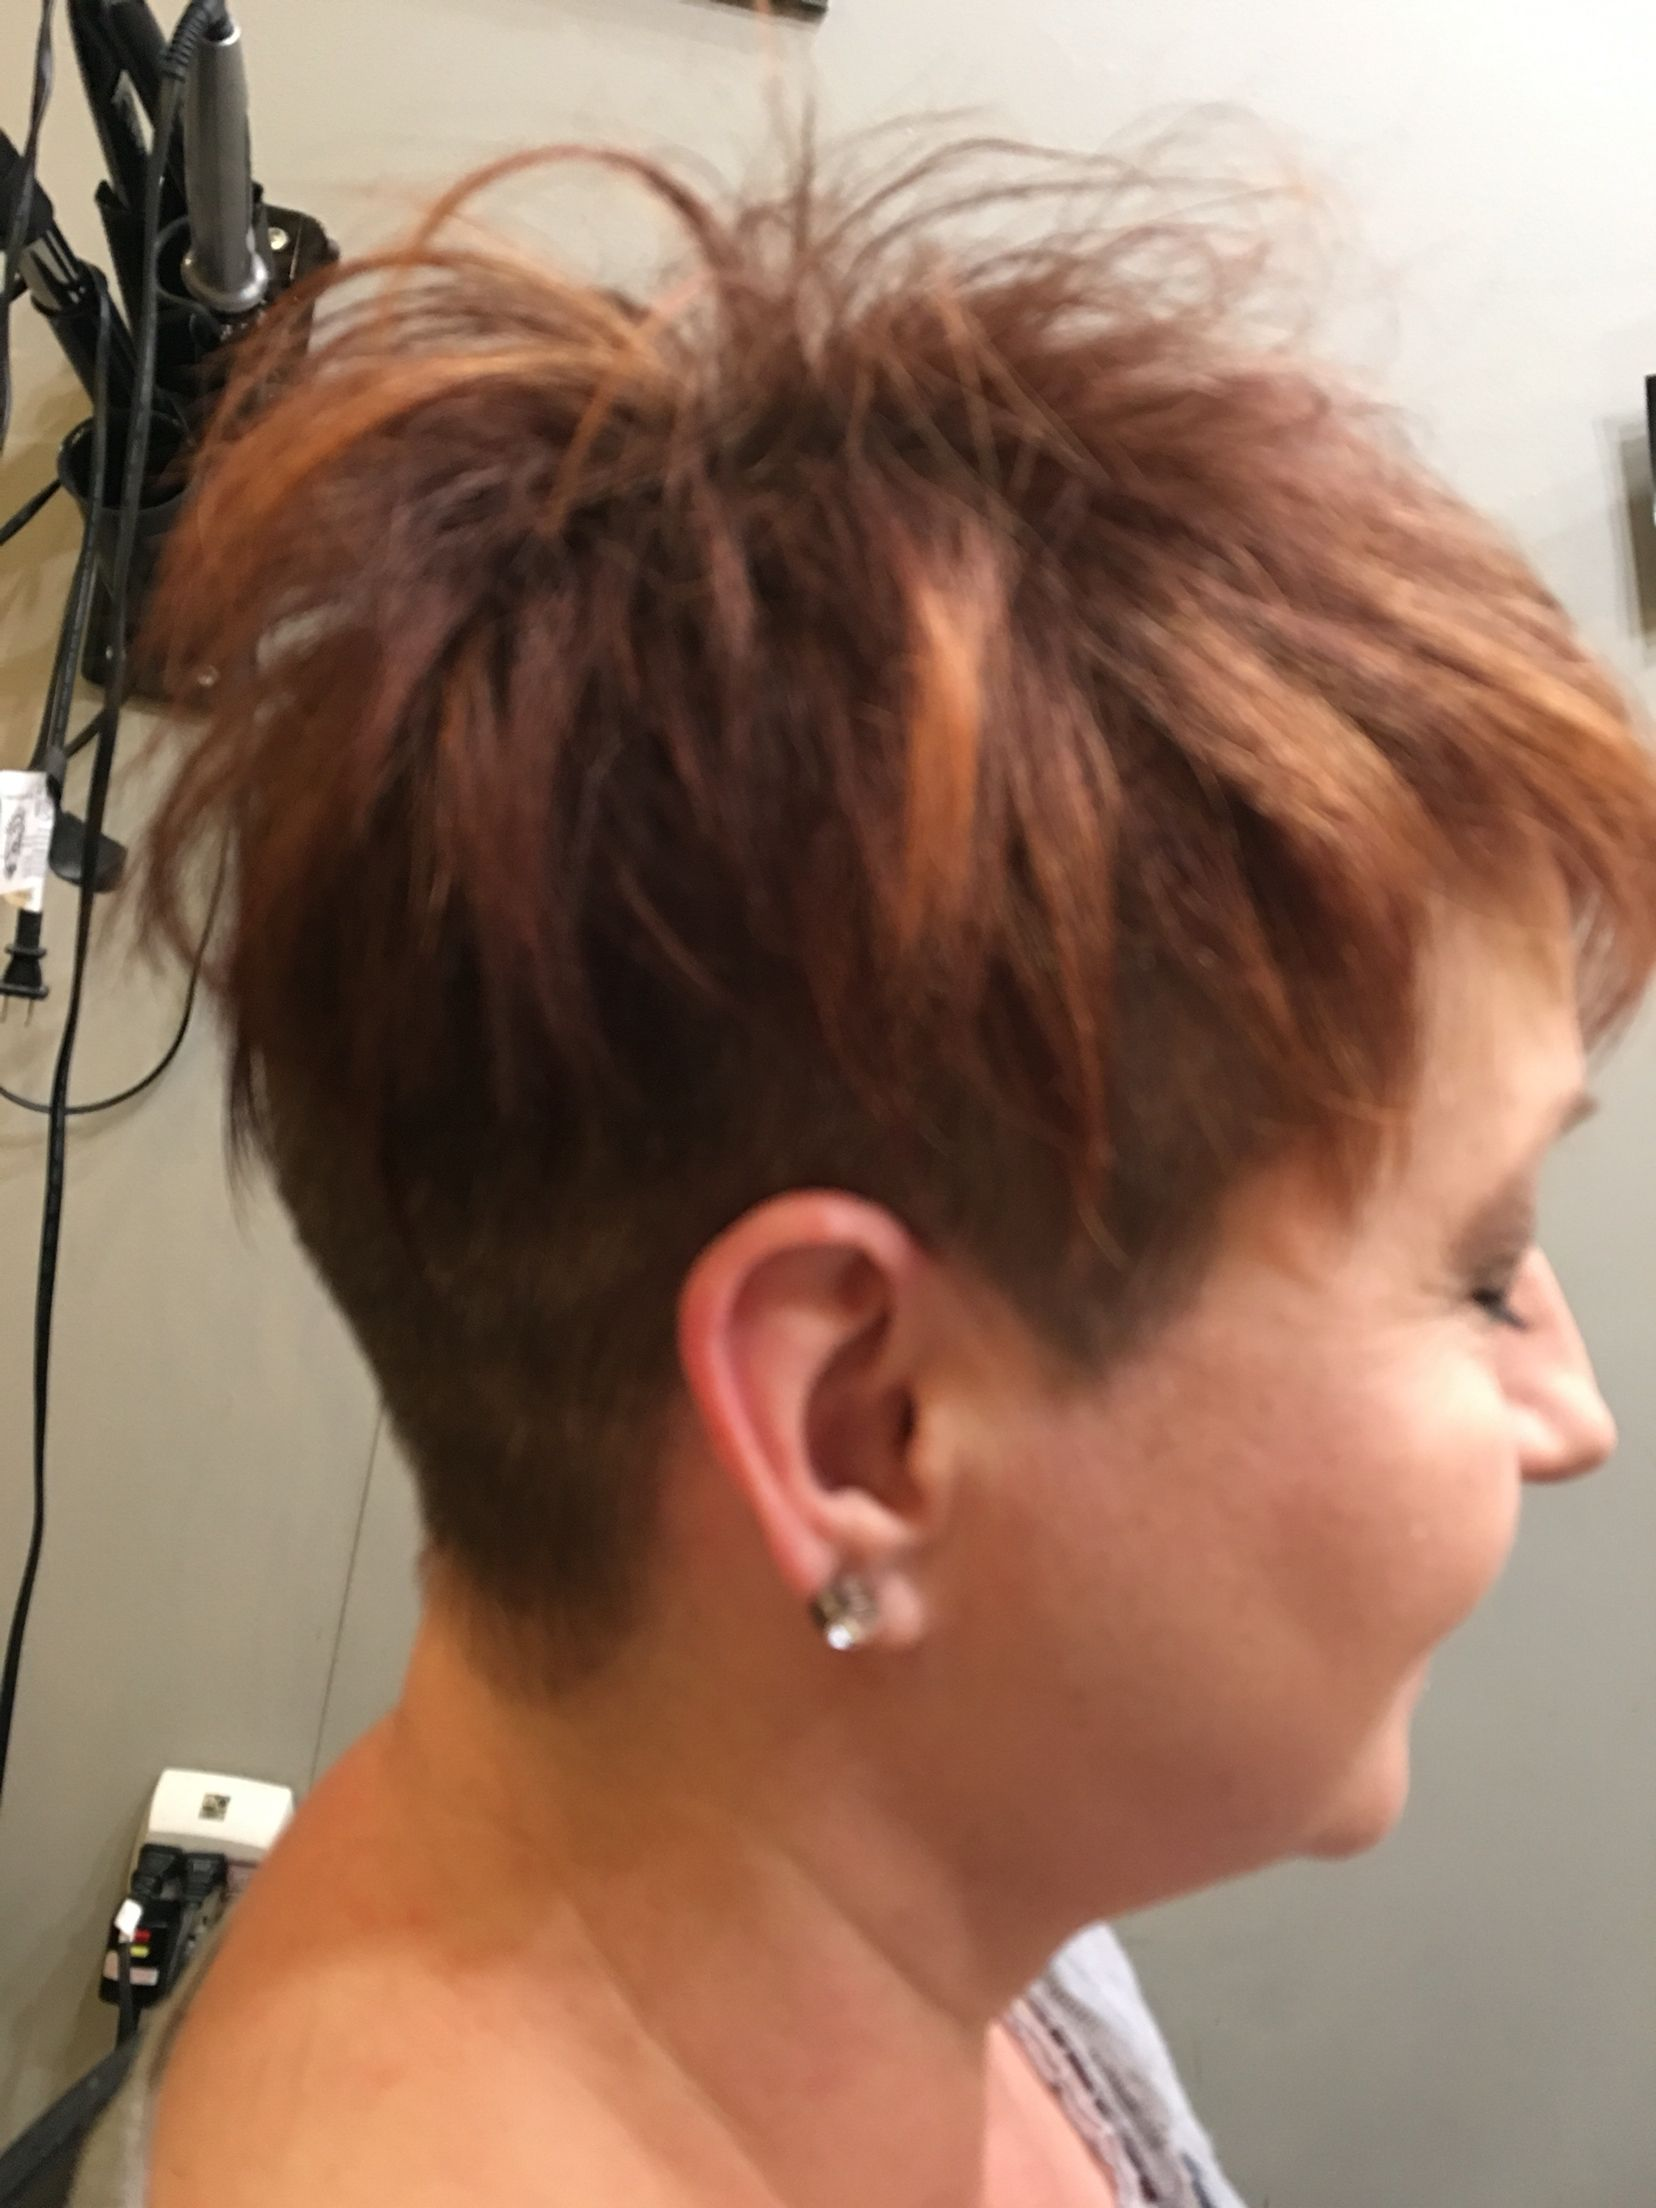 I Used A 2 Guard Clipper And Undercut Up To The Round Of The Head Then Heavily Textured And Shaped Top Short Hair Styles Easy Hair Treatment Cool Hairstyles